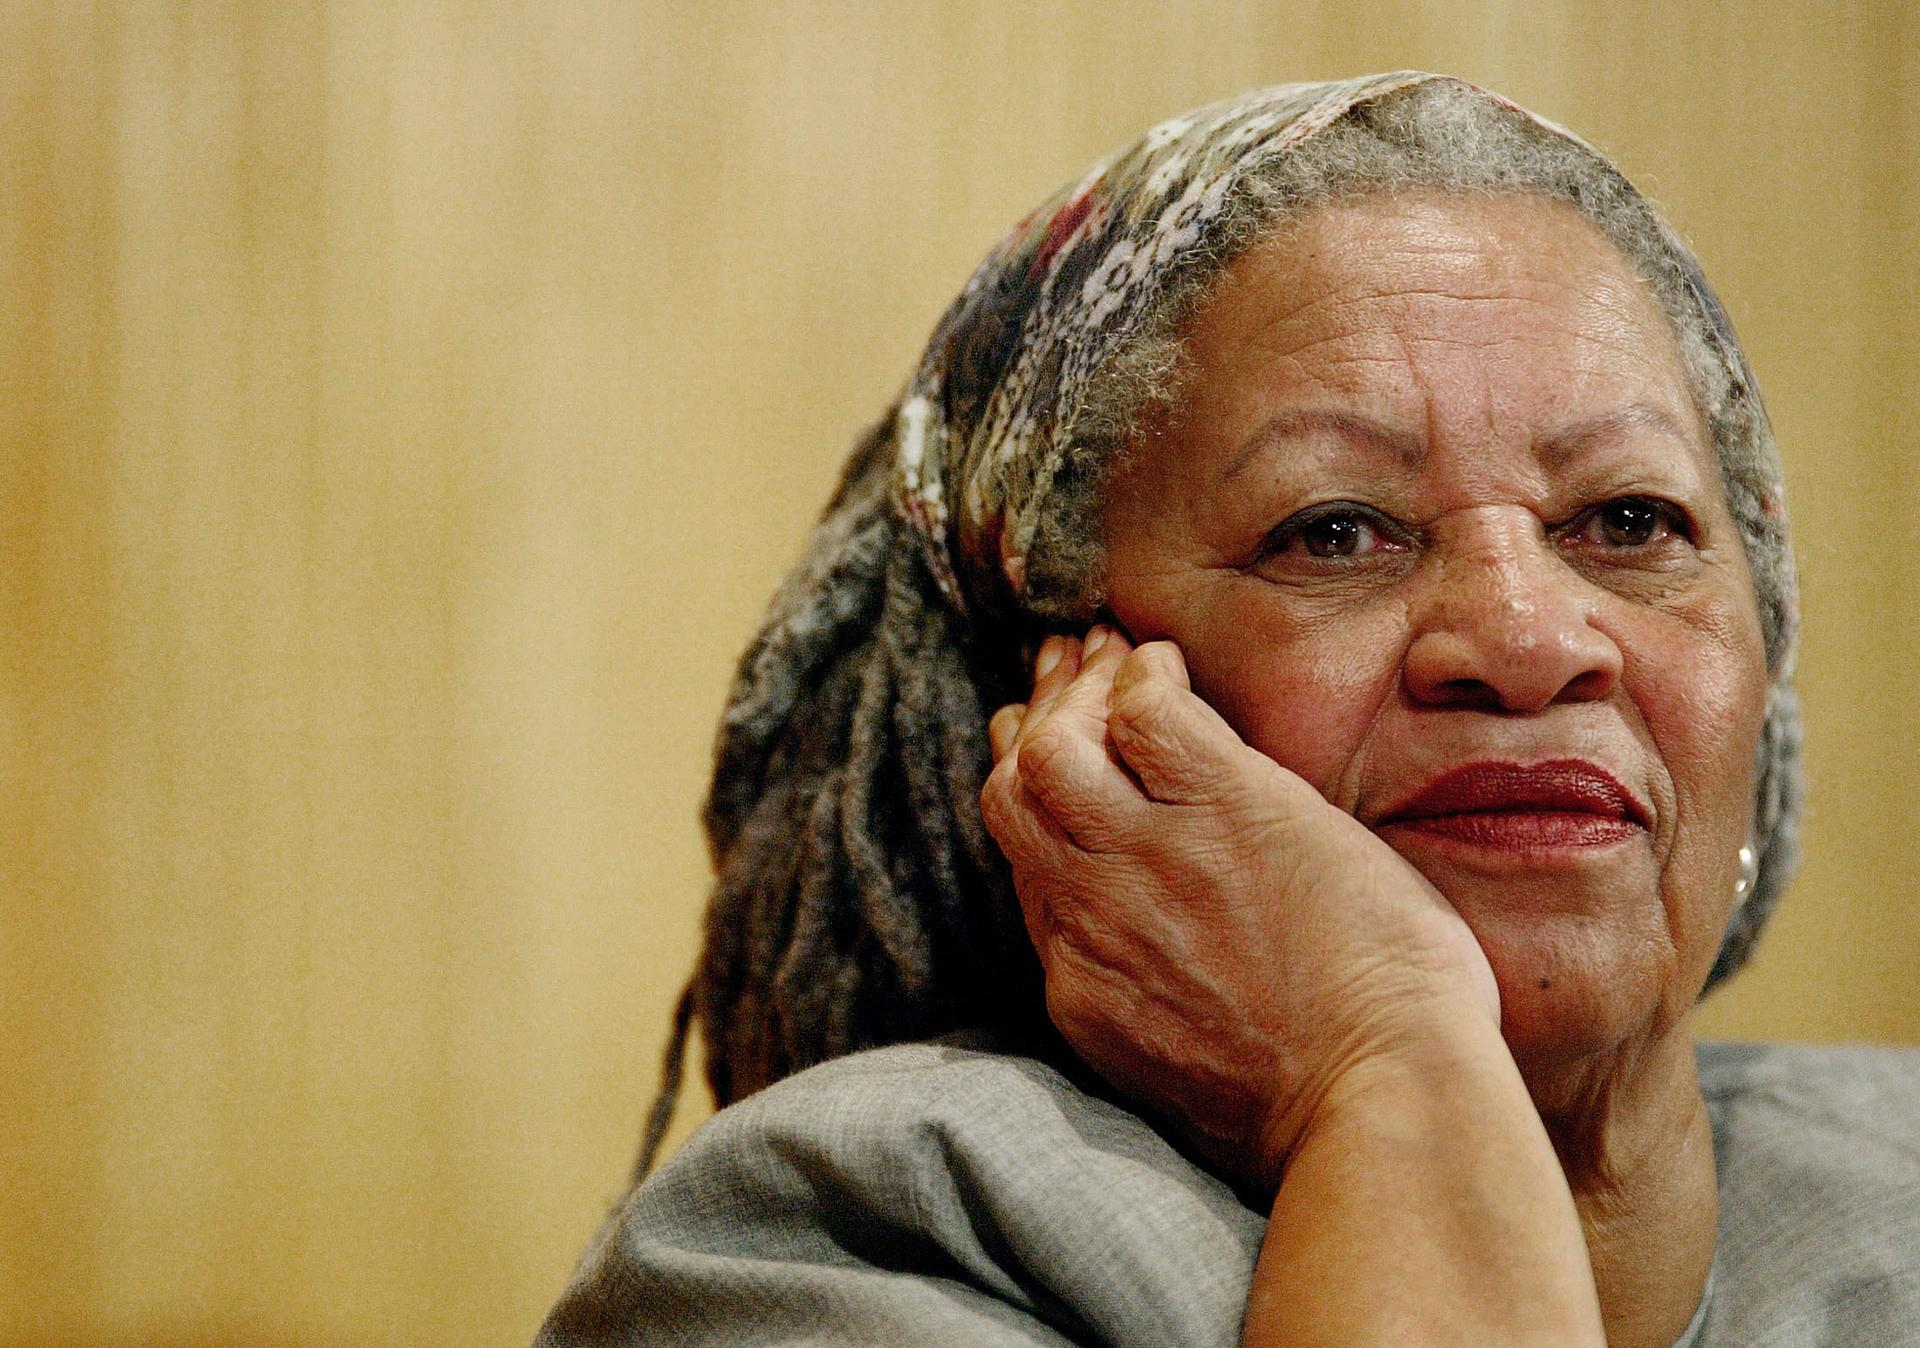 In this Nov. 25, 2005 file photo, author Toni Morrison listens to Mexico's Carlos Monsivais during the Julio Cortazar professorship conference at the Guadalajara's University in Guadalajara City, Mexico.  (AP Photo / Guillermo Arias, File)